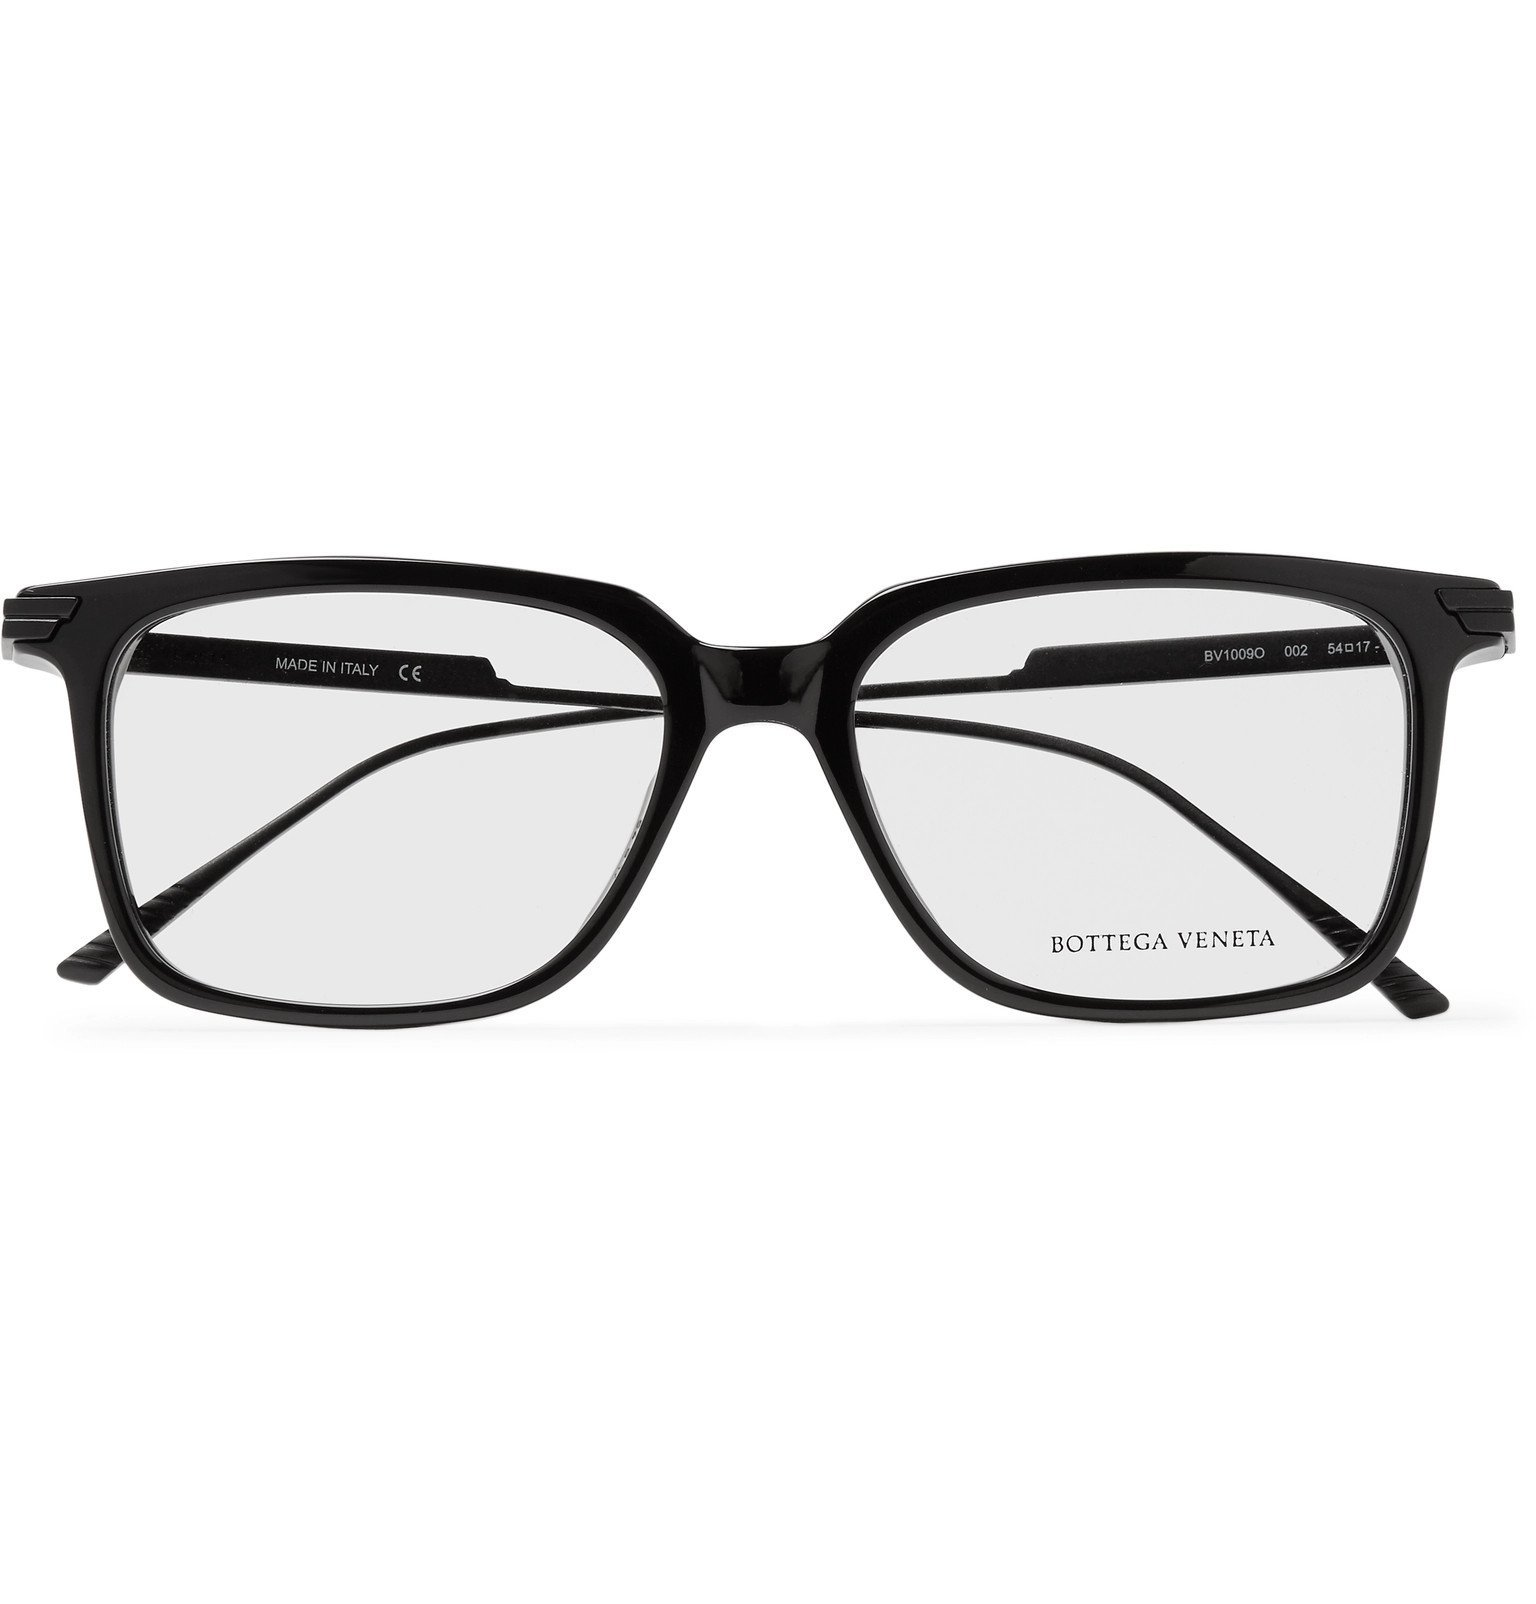 Bottega Veneta - Square-Frame Acetate and Metal Sunglasses - Black